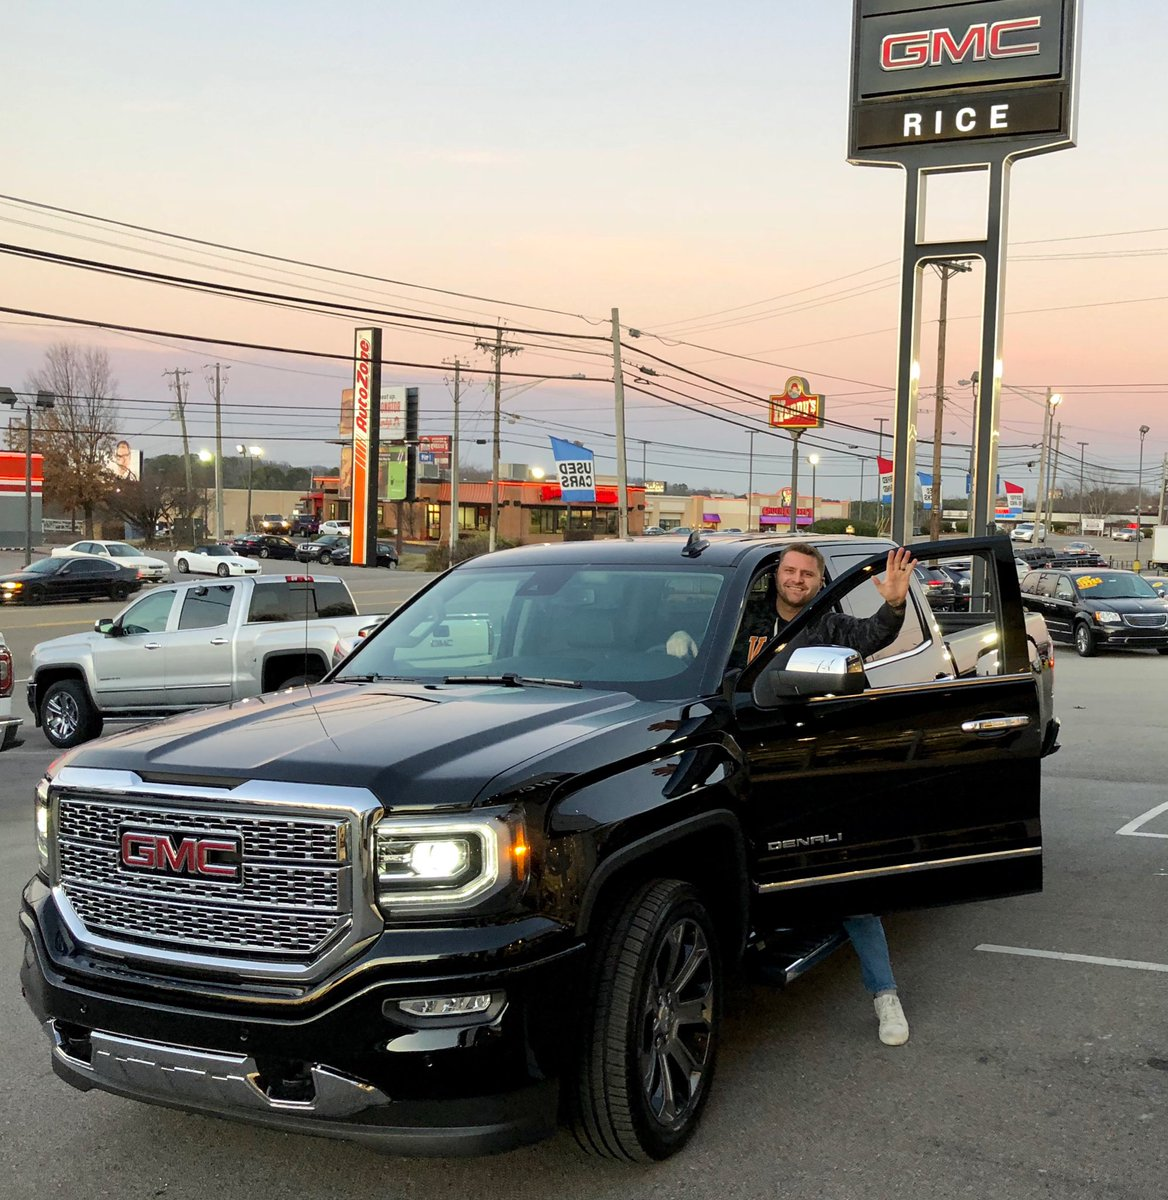 erik ainge on twitter if you want a good deal on a 2018 ricebuickgmc sierra 1500 denali look no further than rice buick gmc just traded in last week i love the twitter